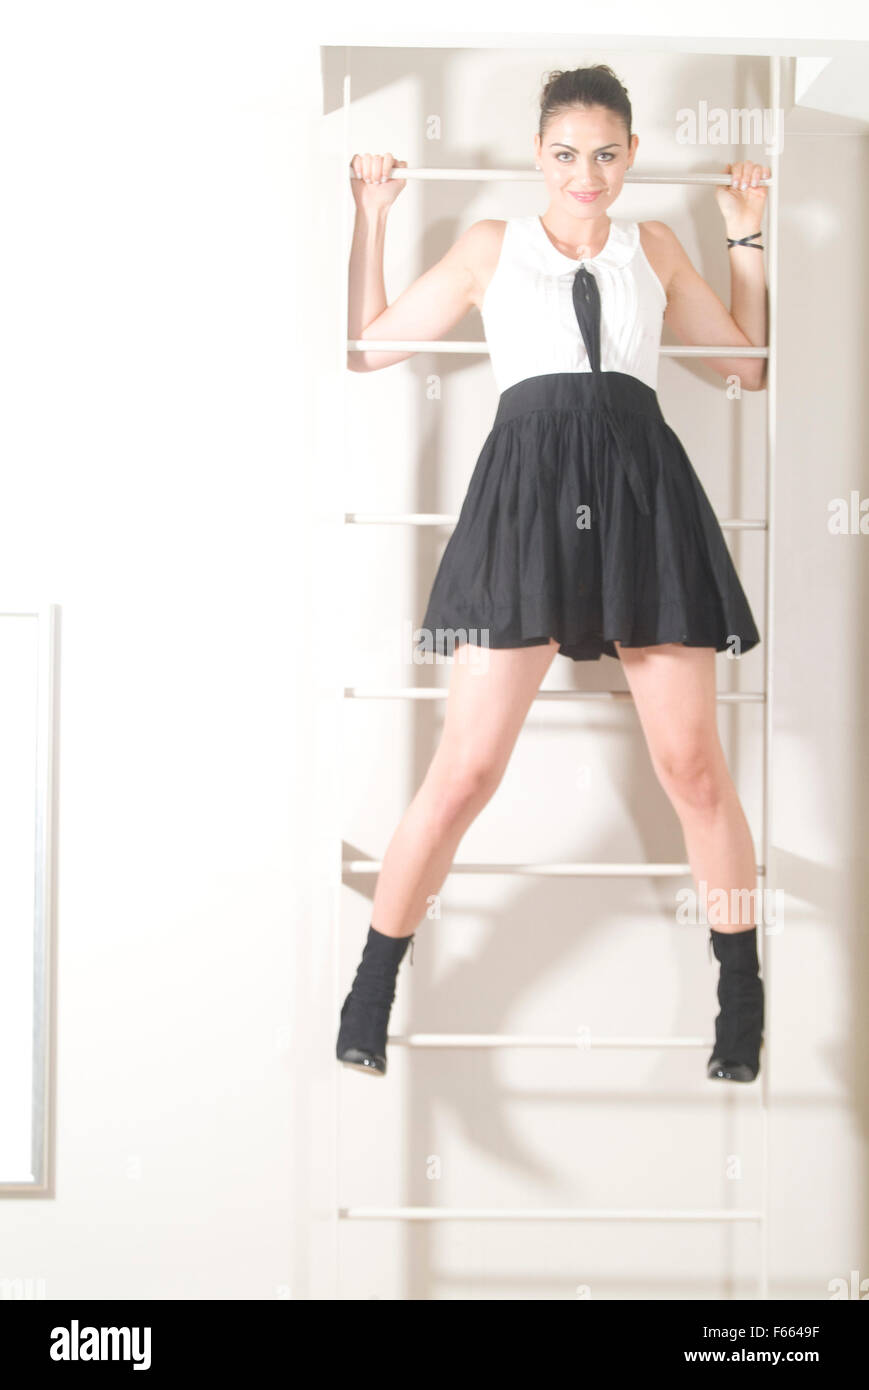 Girl in a black and white school girl dress climbing a latter facing the camera.  Caught in the moment on camera. - Stock Image